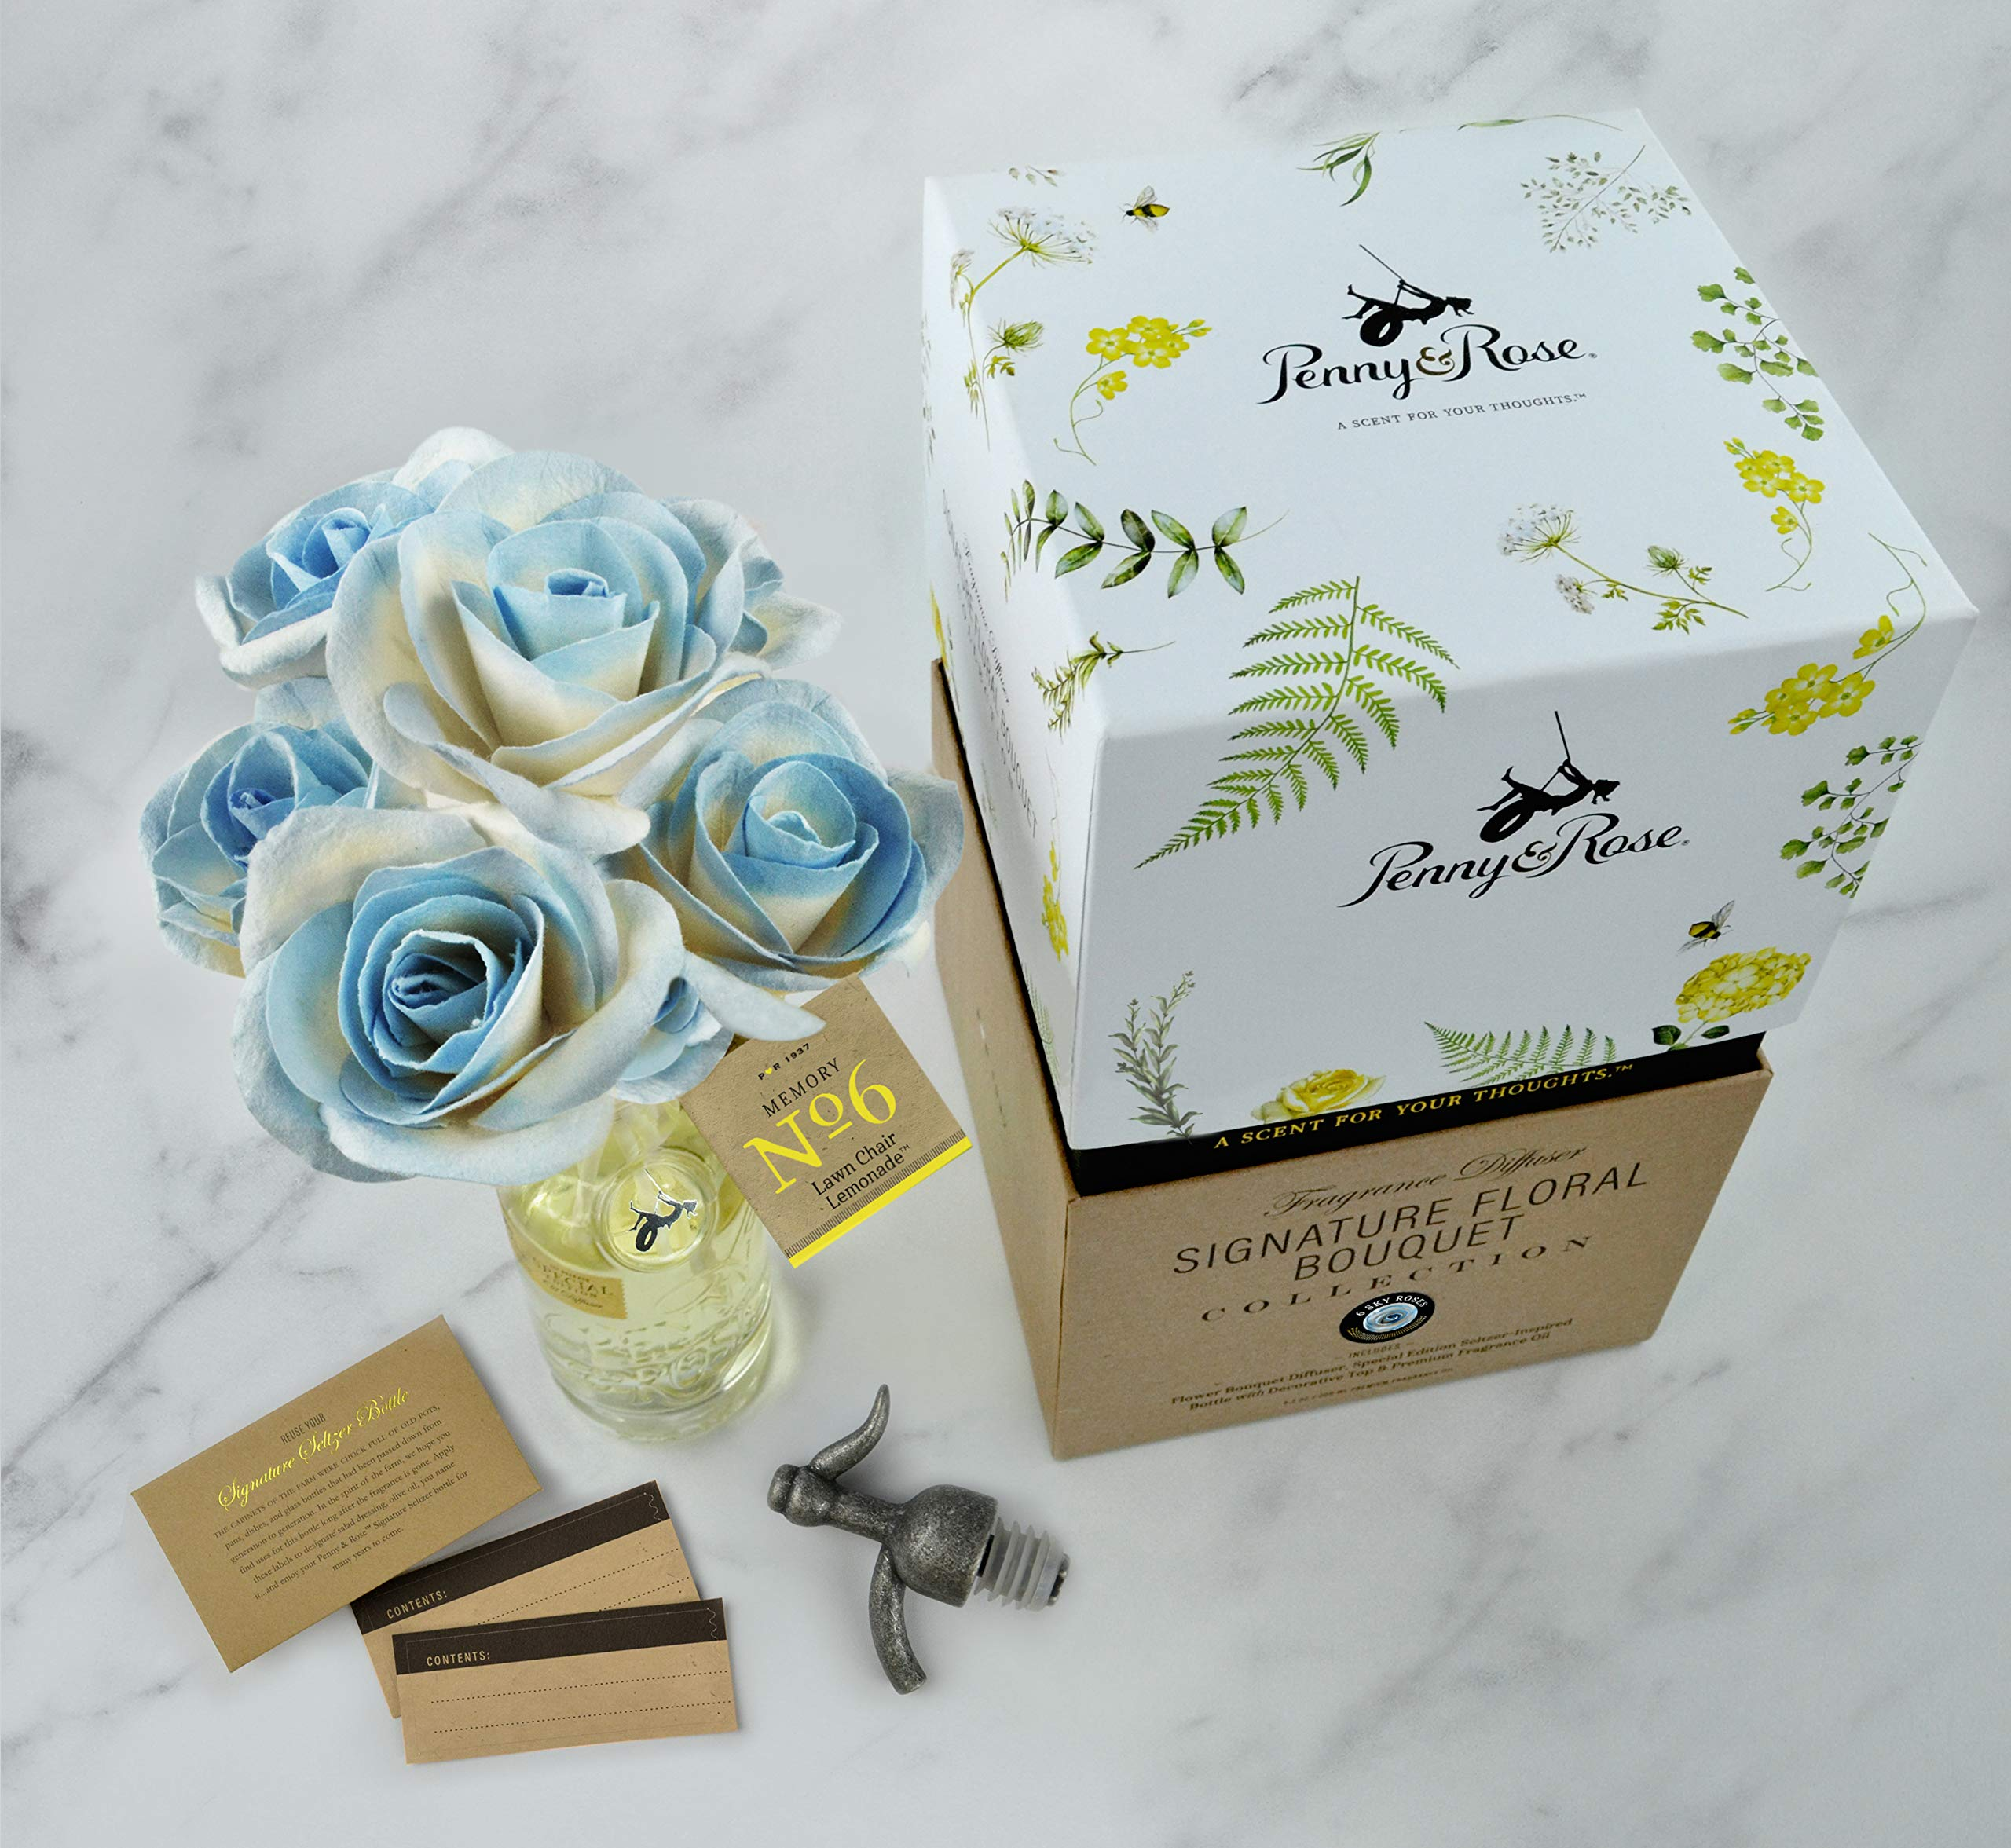 Penny & Rose Sky Rose Diffuser | Lawn Chair Lemonade Oil Scent by PENNY AND ROSE (Image #3)